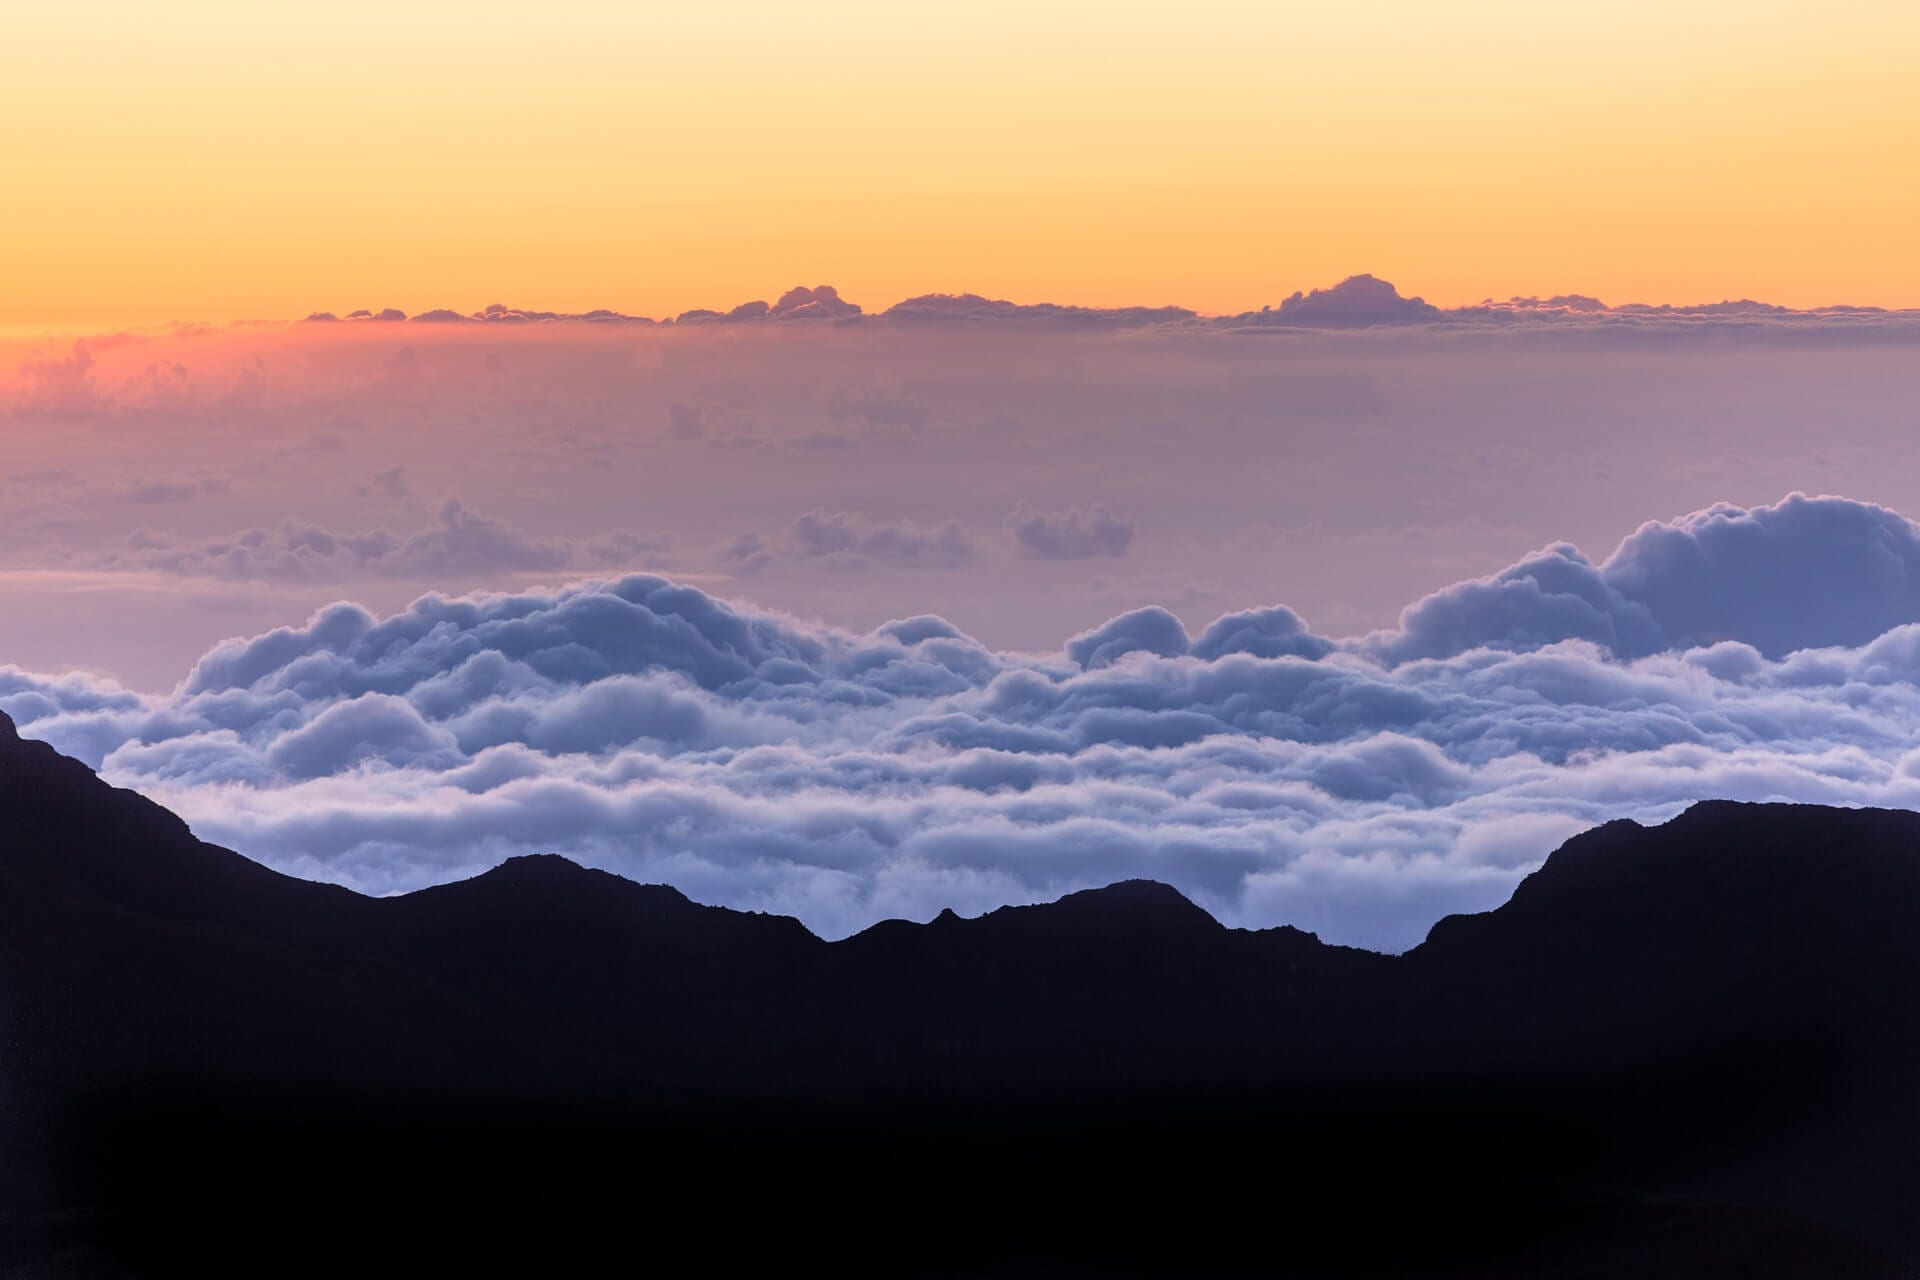 Sunrise over Haleakala National Park